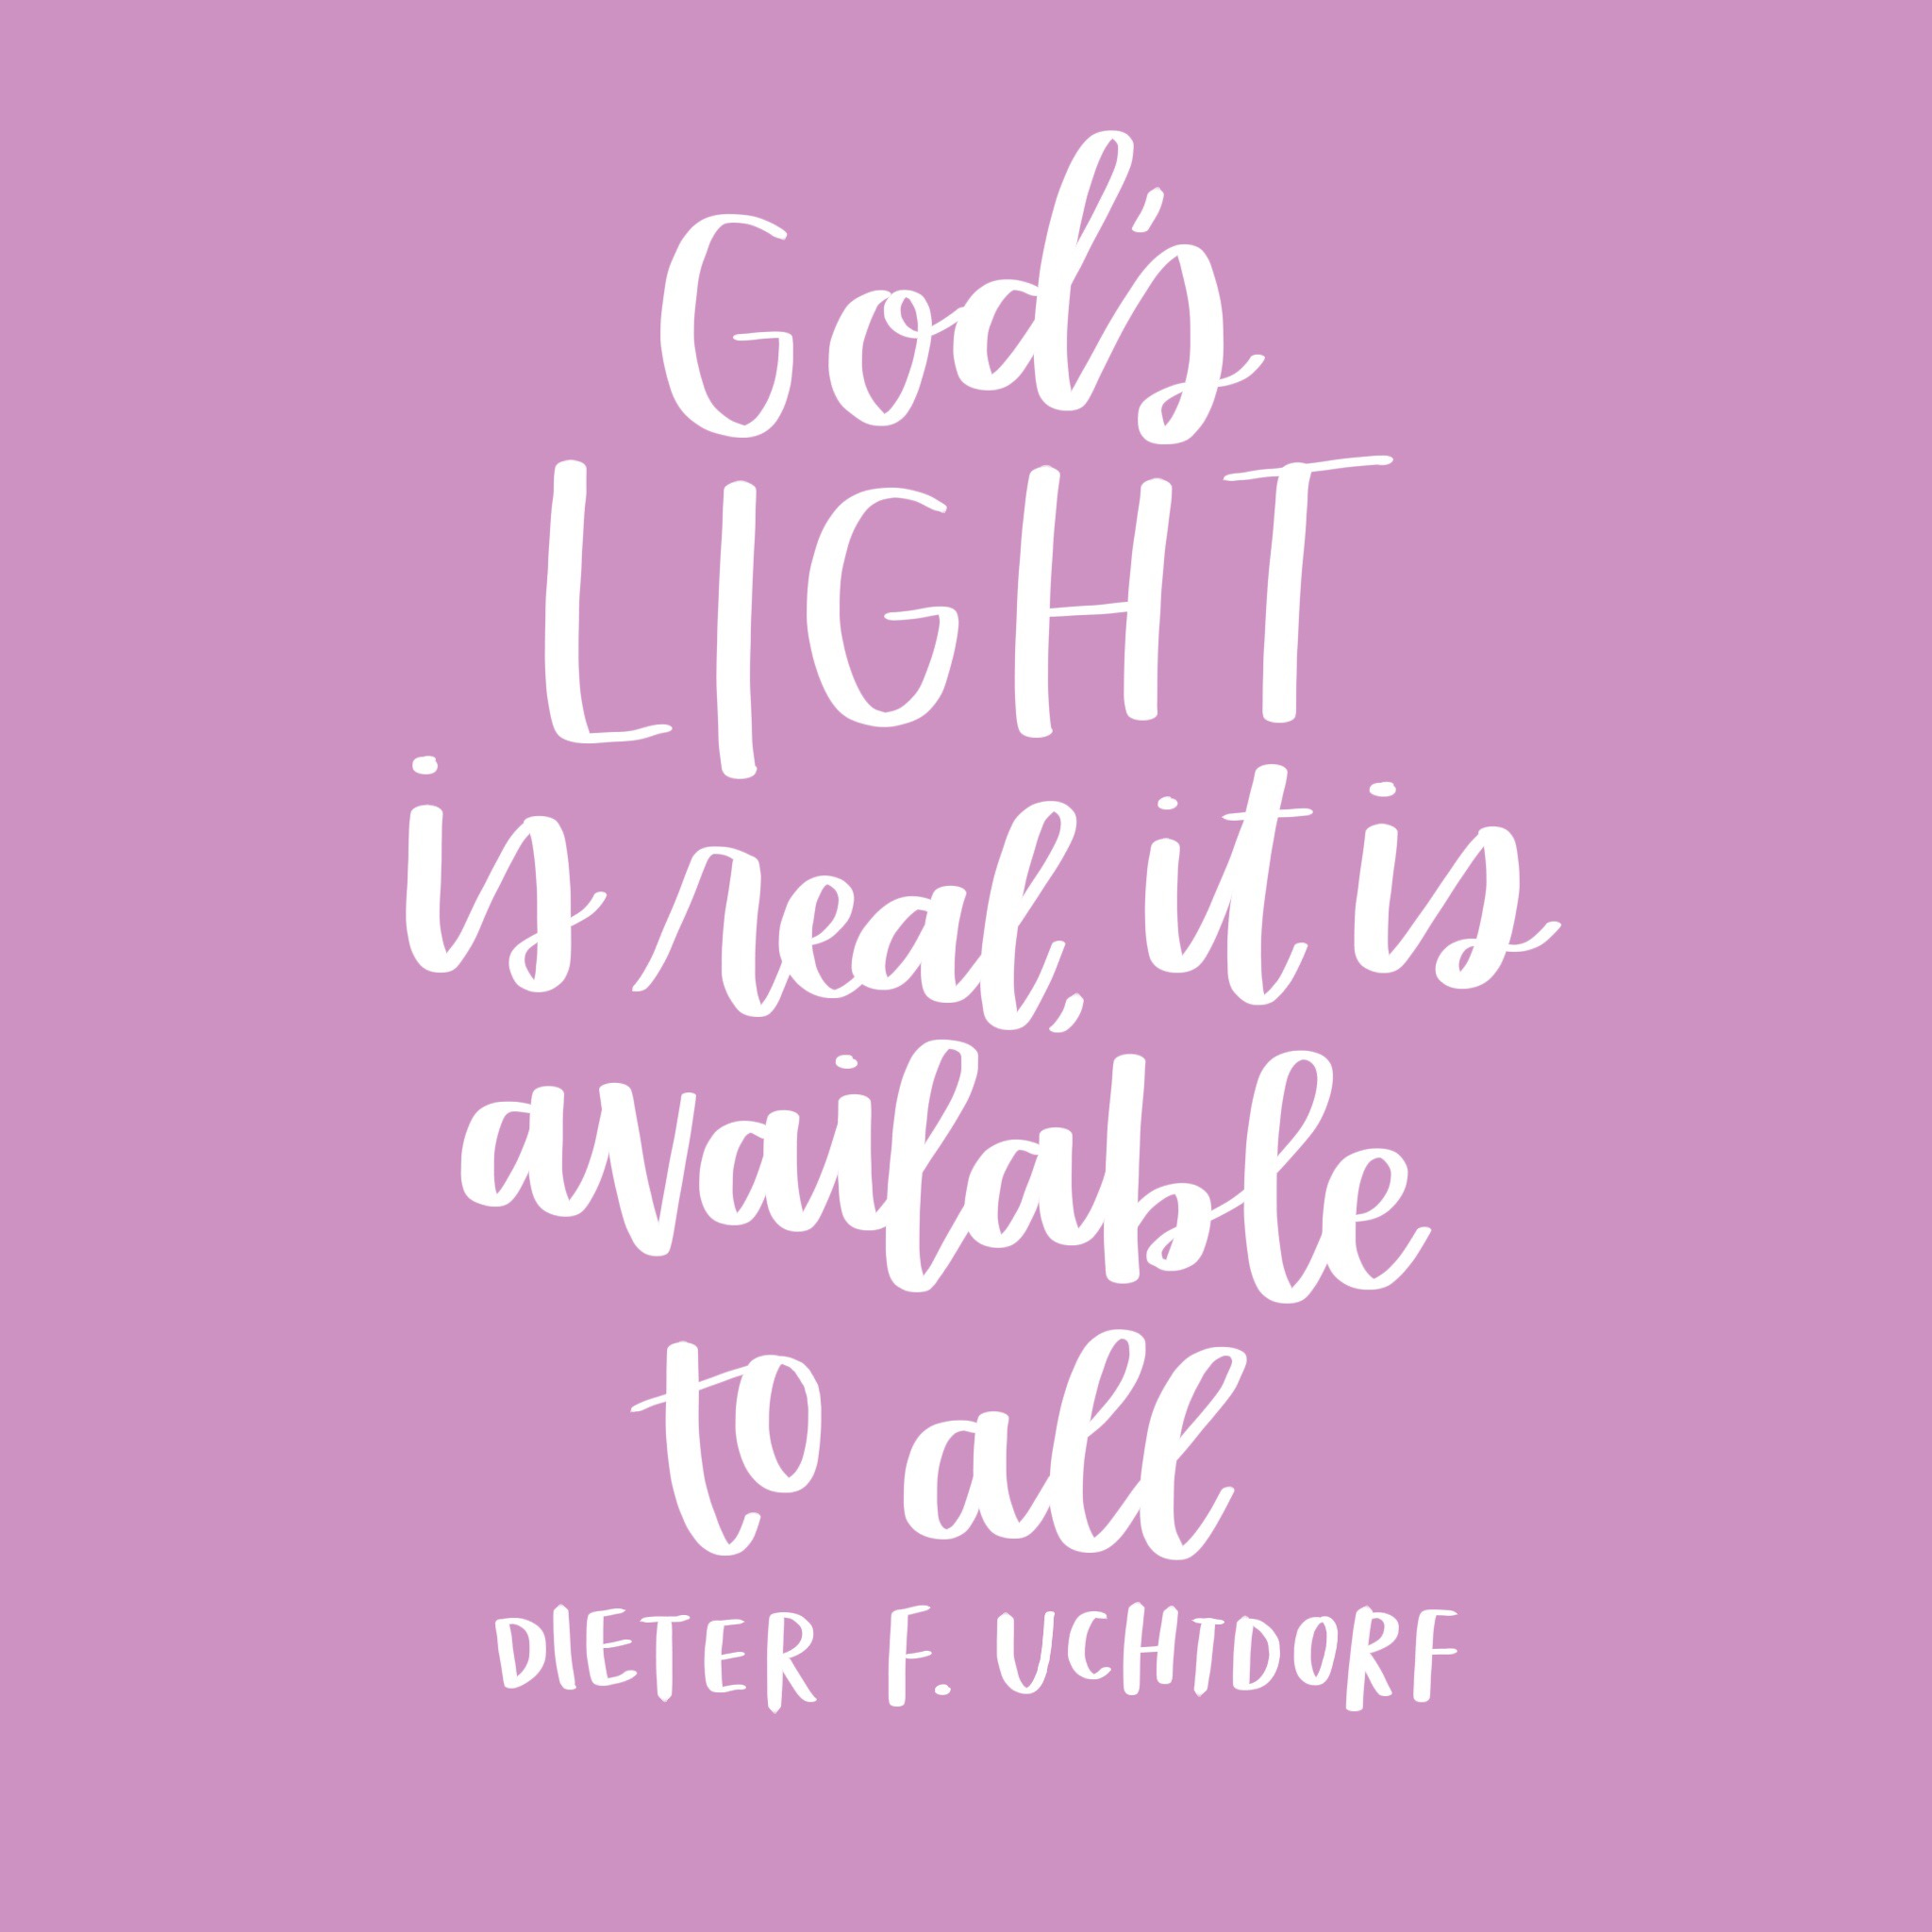 """God's light is real, it is available to all."" -Dieter F. Uchtdorf"